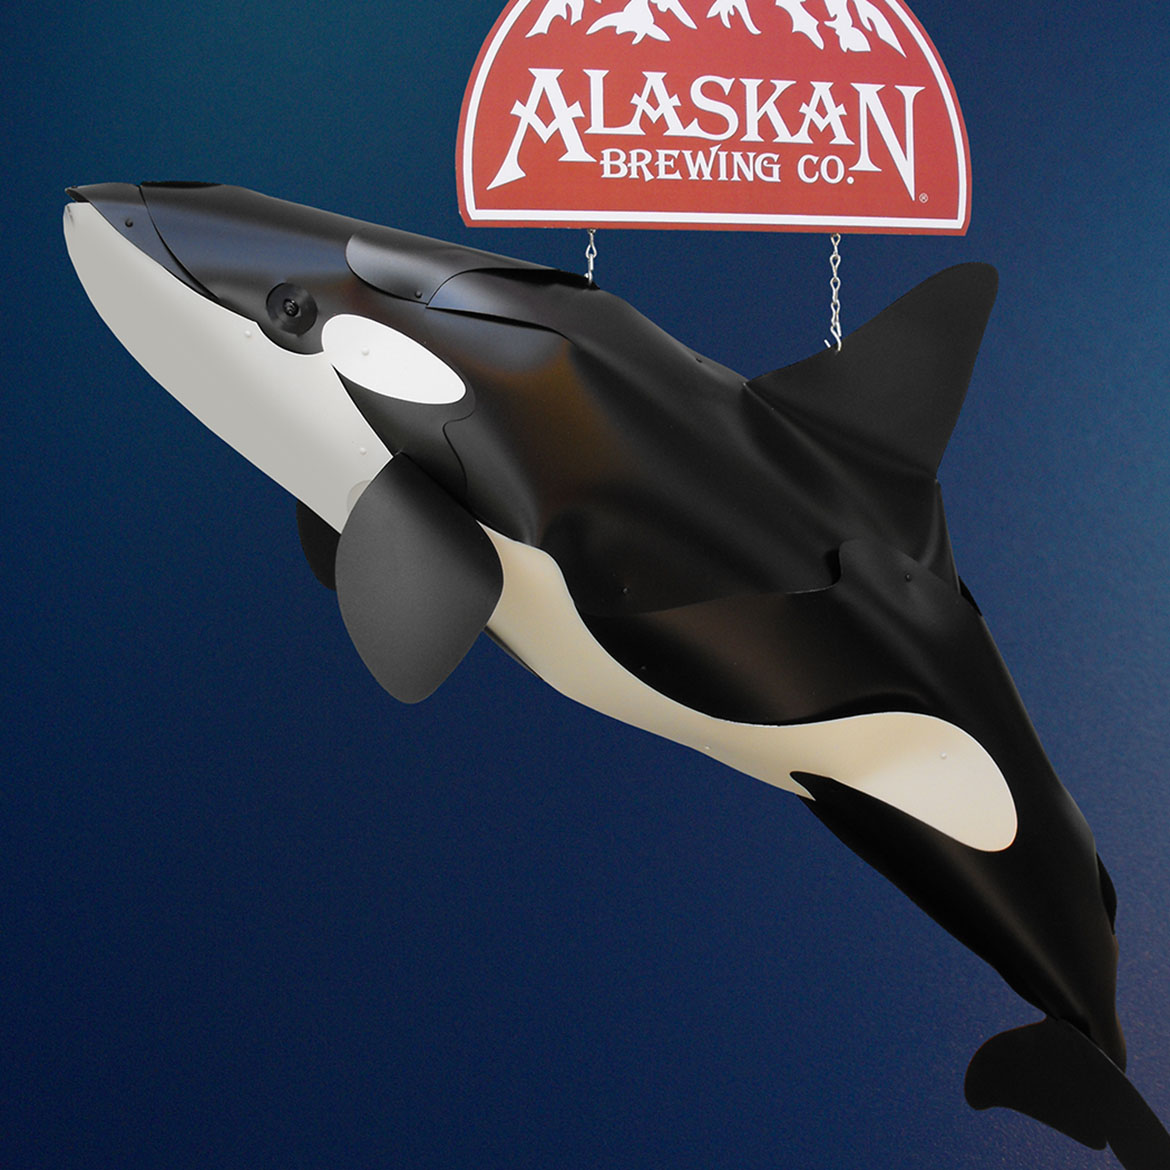 Alaskan Brewing Company Point of Sale